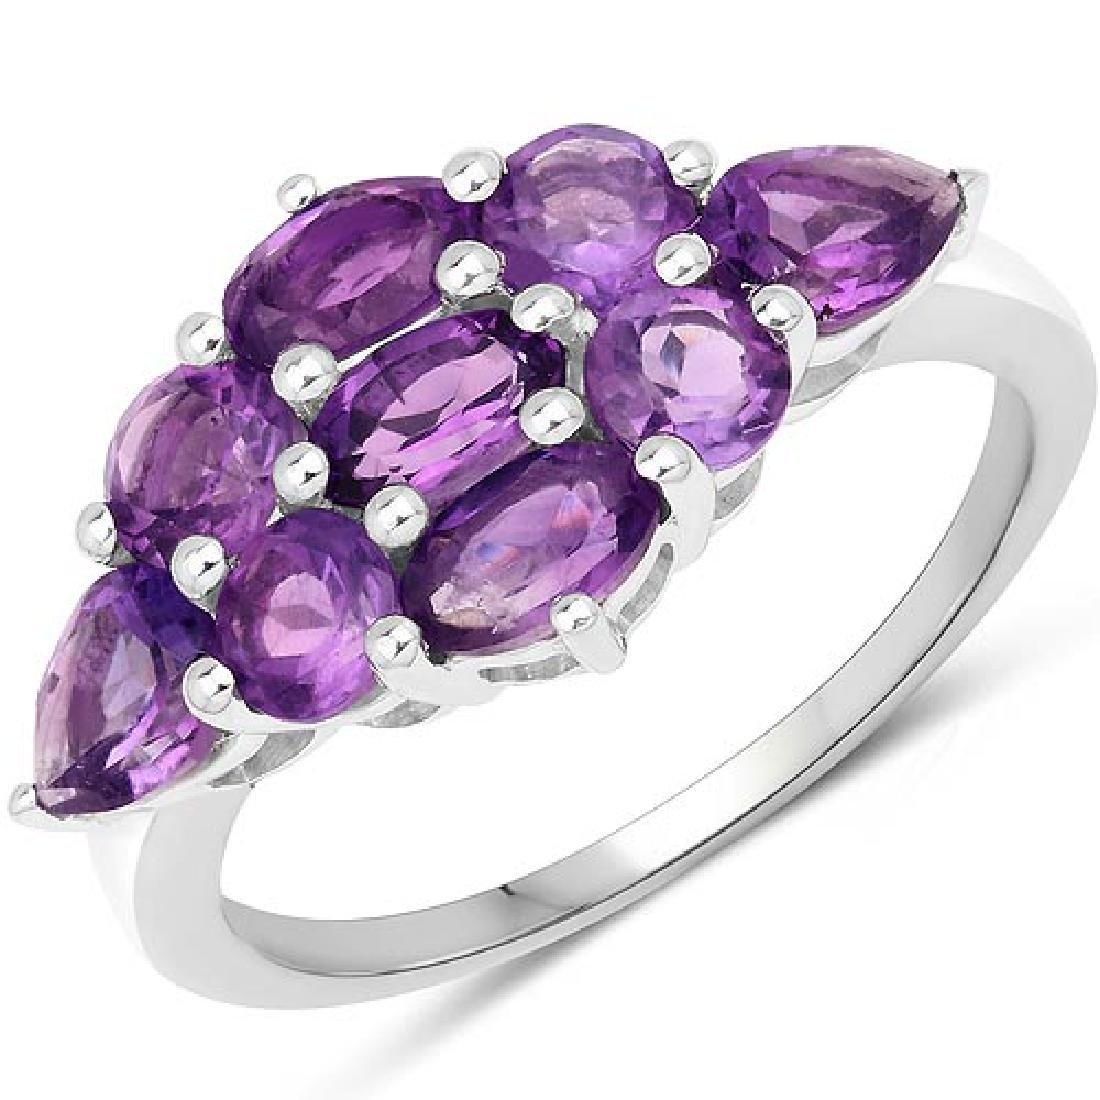 2.22 Carat Genuine Amethyst .925 Sterling Silver Ring